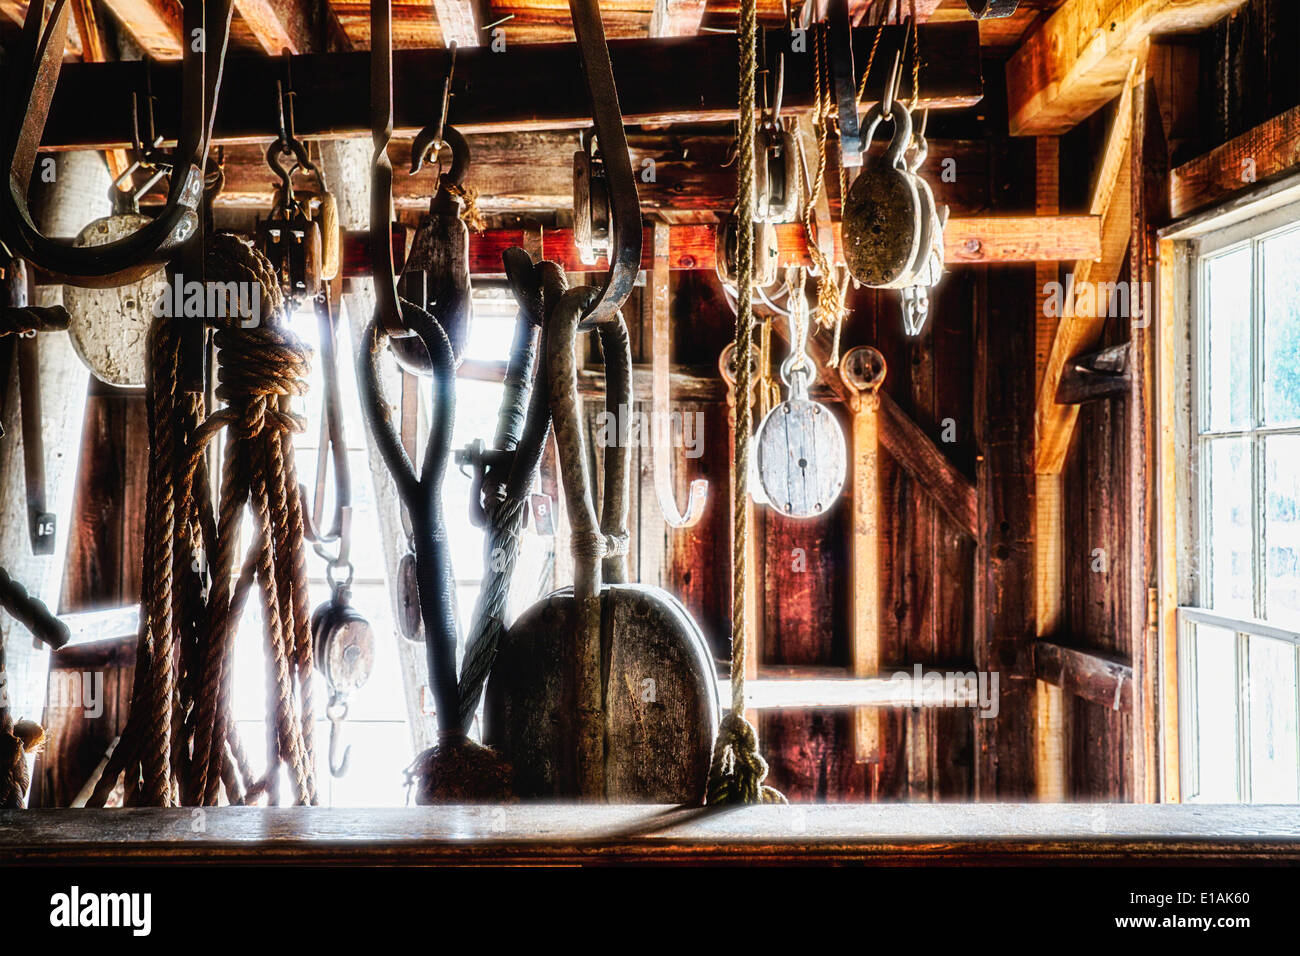 Old Sailboat Rigging Supplies Displayed in a Rigging Loft, Mystic Seaport Museum, Connecticut - Stock Image